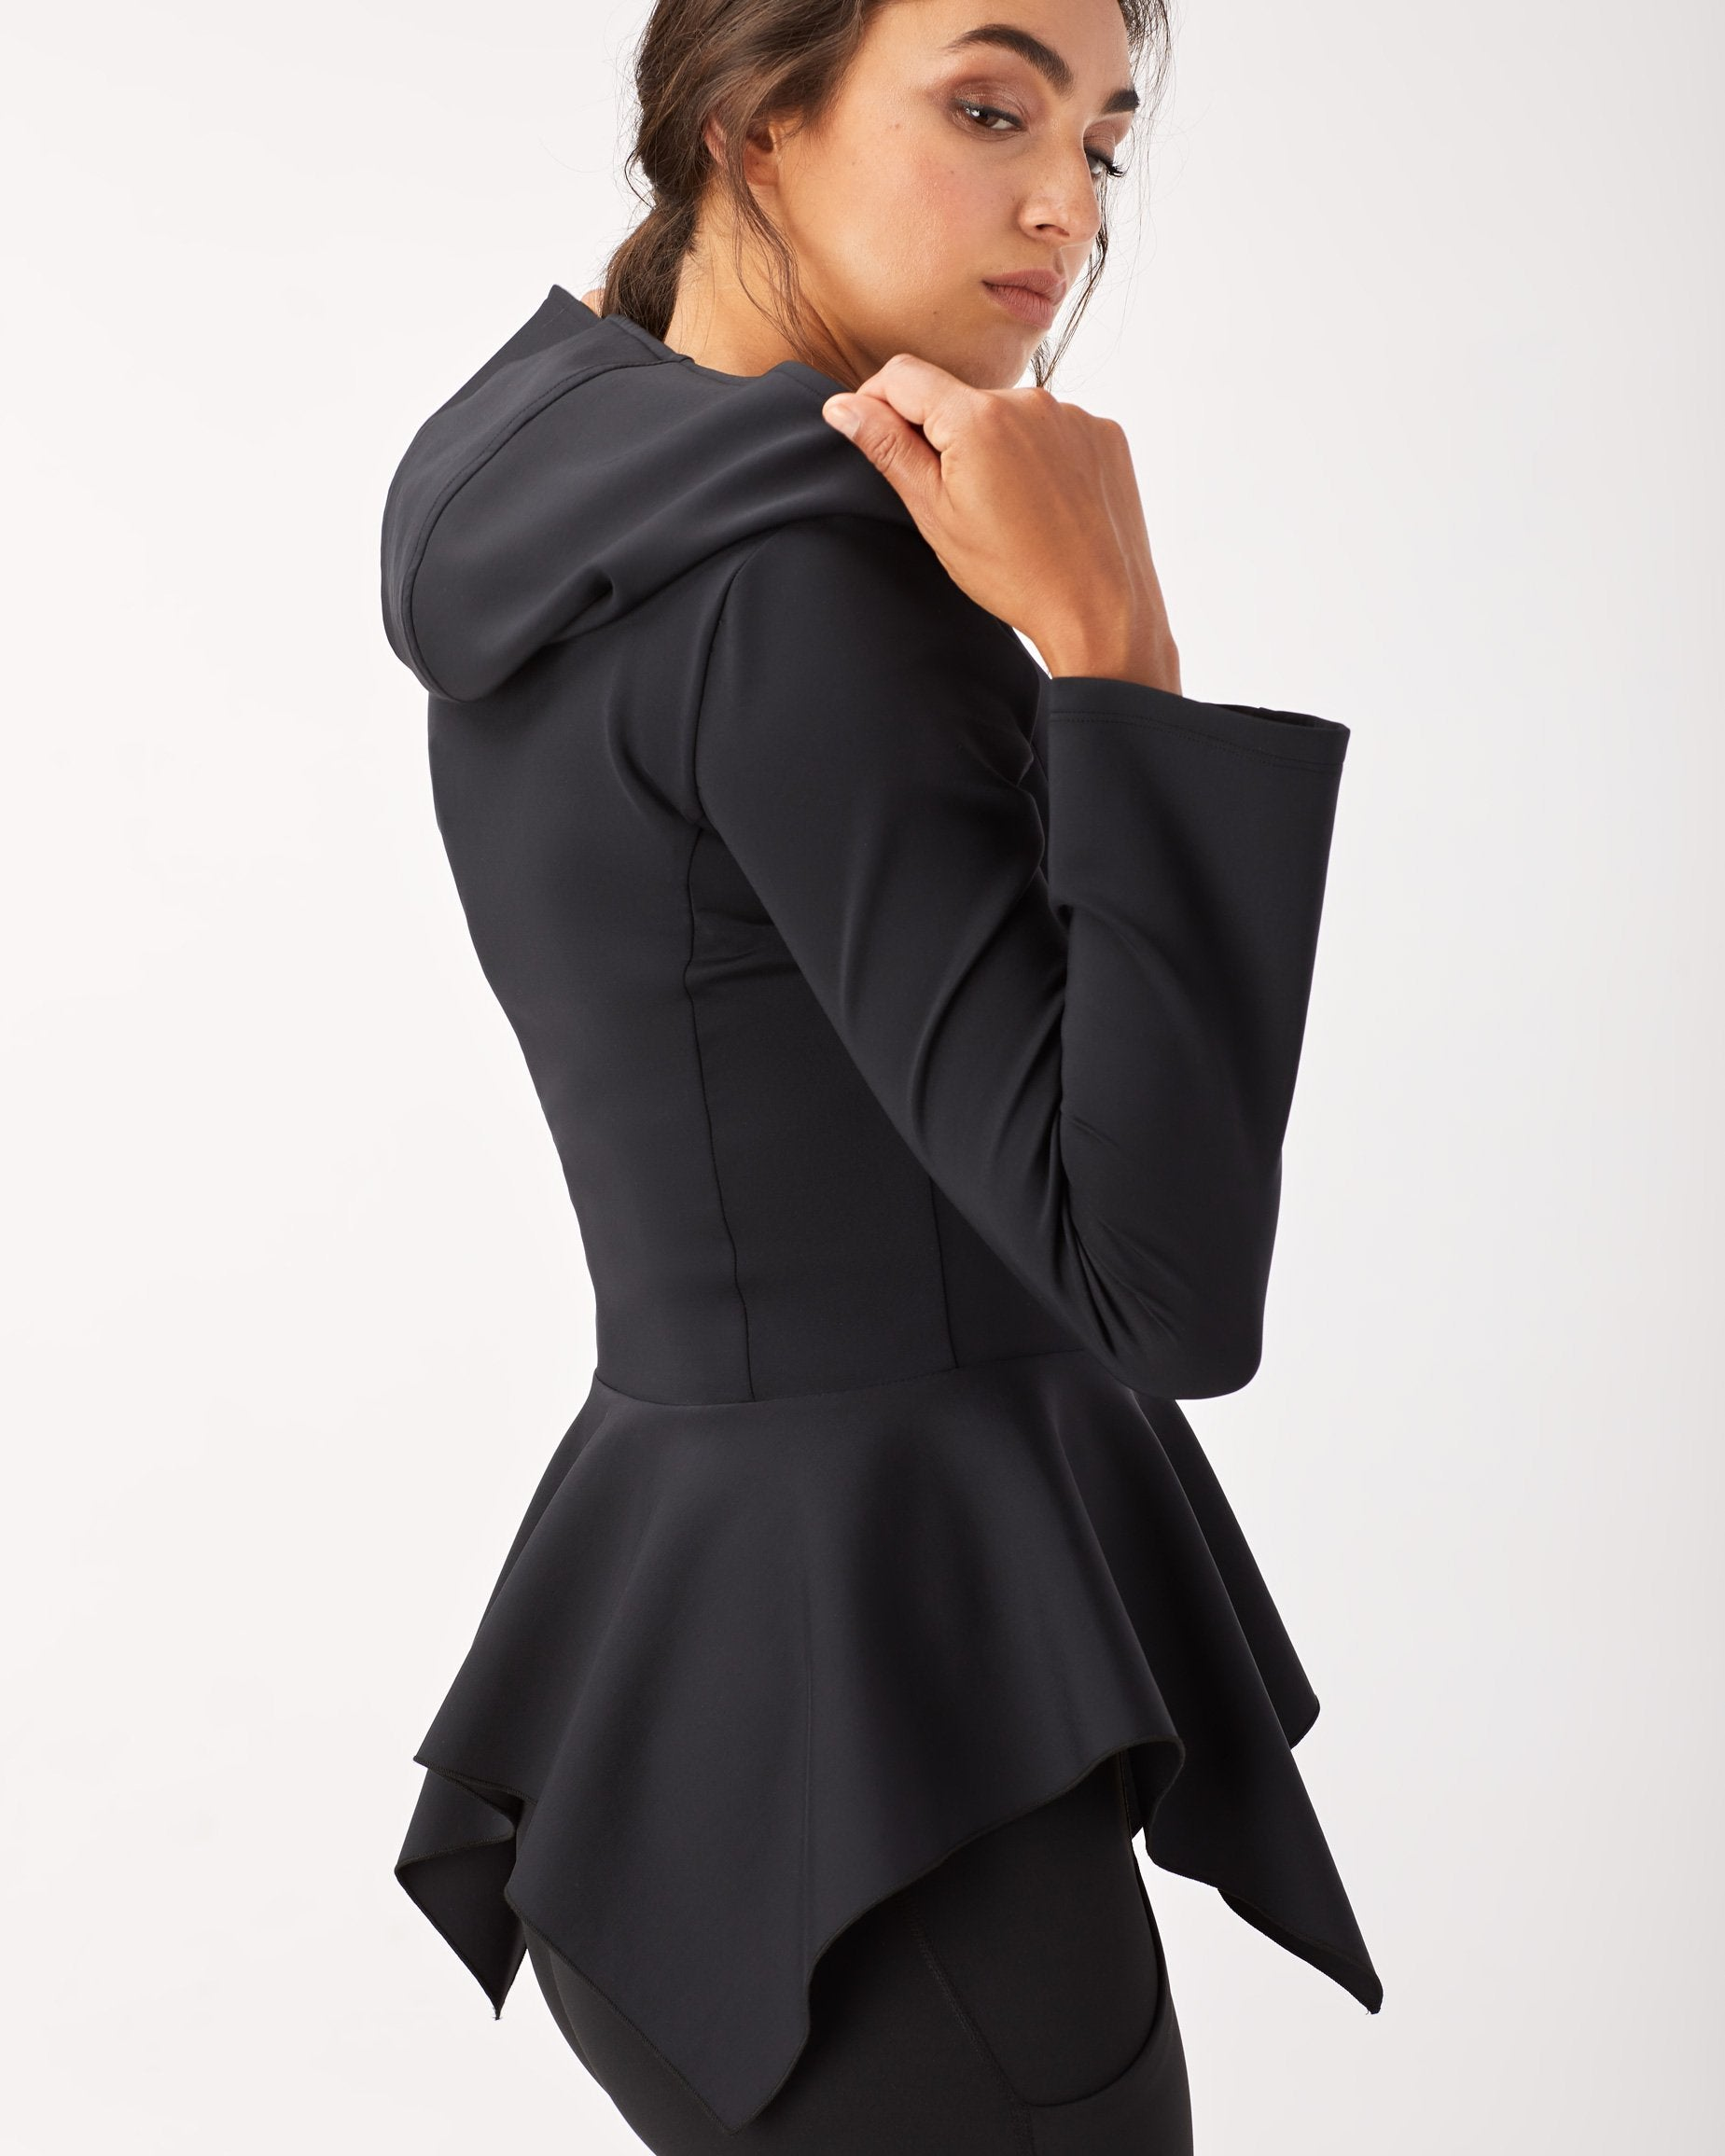 nightfall-jacket-black